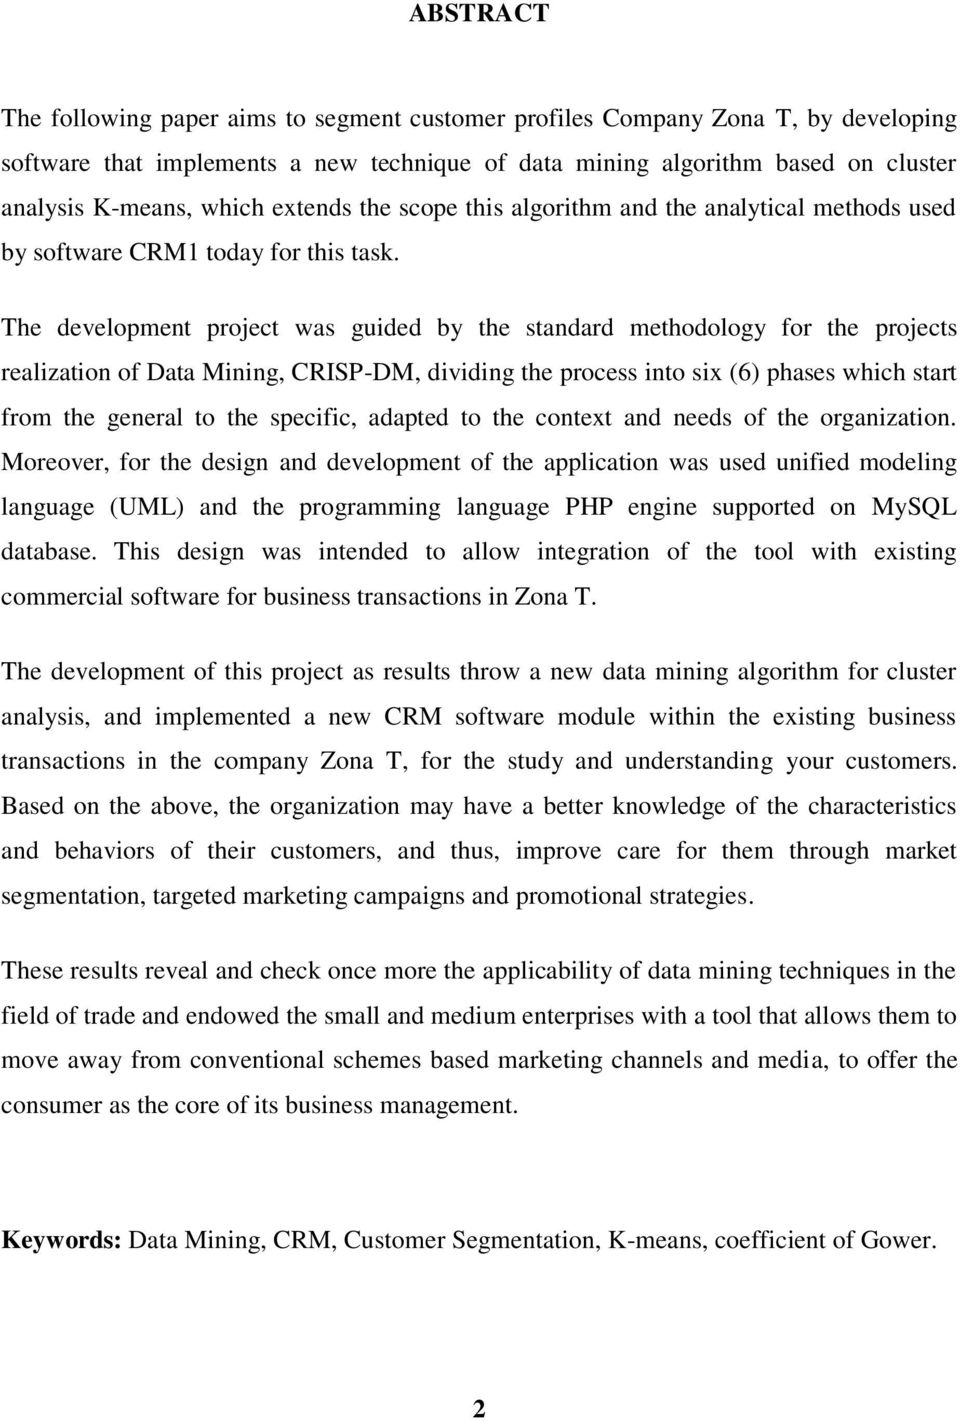 The development project was guided by the standard methodology for the projects realization of Data Mining, CRISP-DM, dividing the process into six (6) phases which start from the general to the